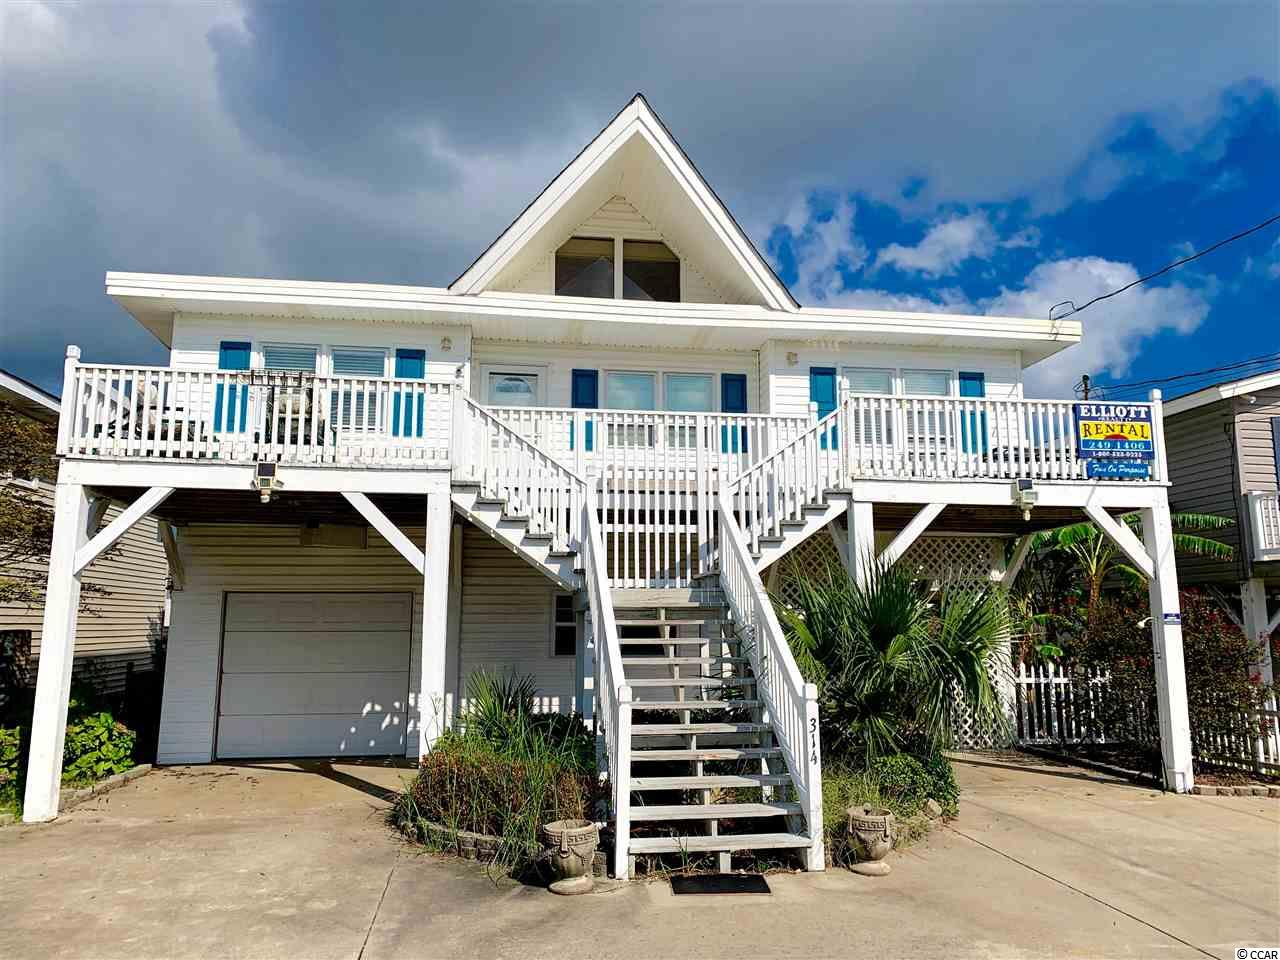 This is a hard to find Cherry Grove raised beach home with 4 bedrooms and 2 baths on the top floor.  The bottom floor presents an opportunity for potential buyers since it has a living room with tile floor, kitchen, bedroom, and full bath on the ground level that is heated and cooled.  This gives the home a 5th bedroom for larger families, older adults, kids, and even pets. This home is a short walking distance to the beach and includes a private dock.